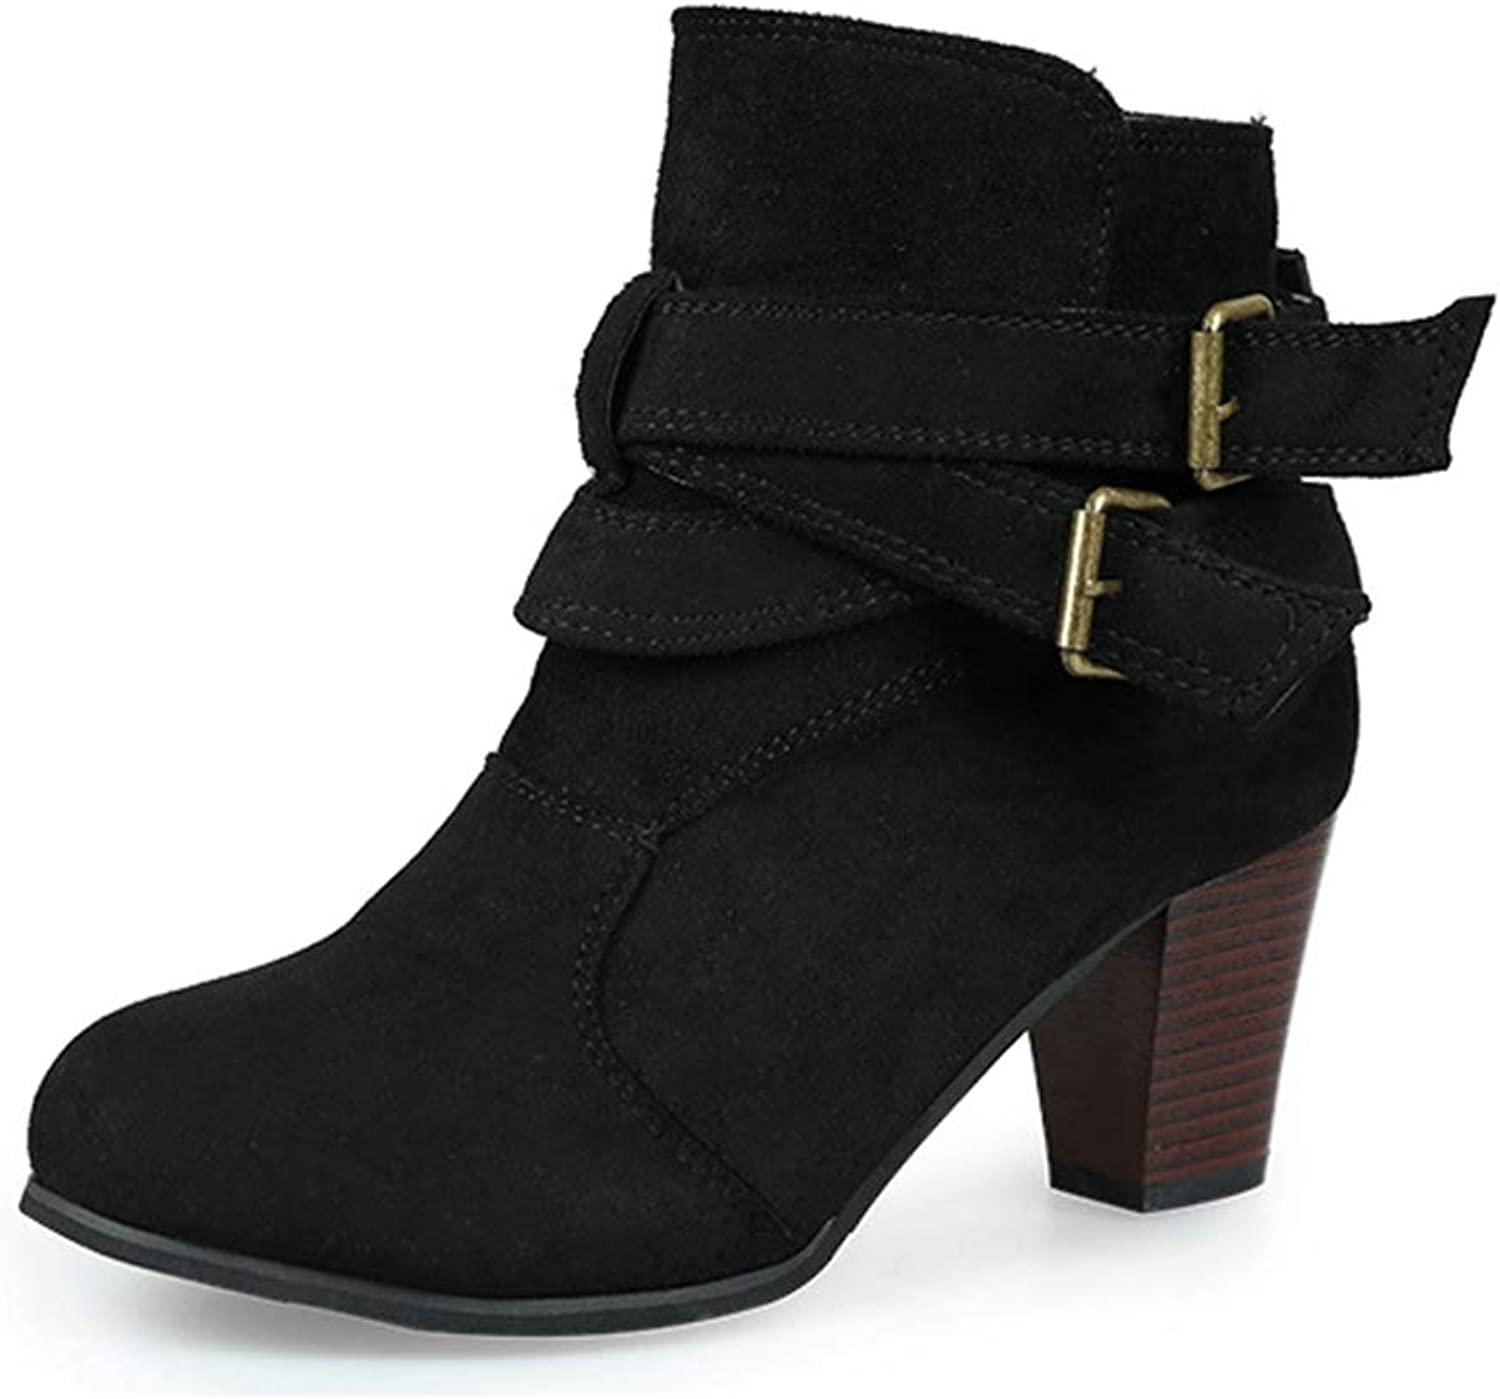 CYBLING Women's Ankle Booties Buckle Strap Chunky Stacked Heel Side Zipper Round Toe Winter Boots